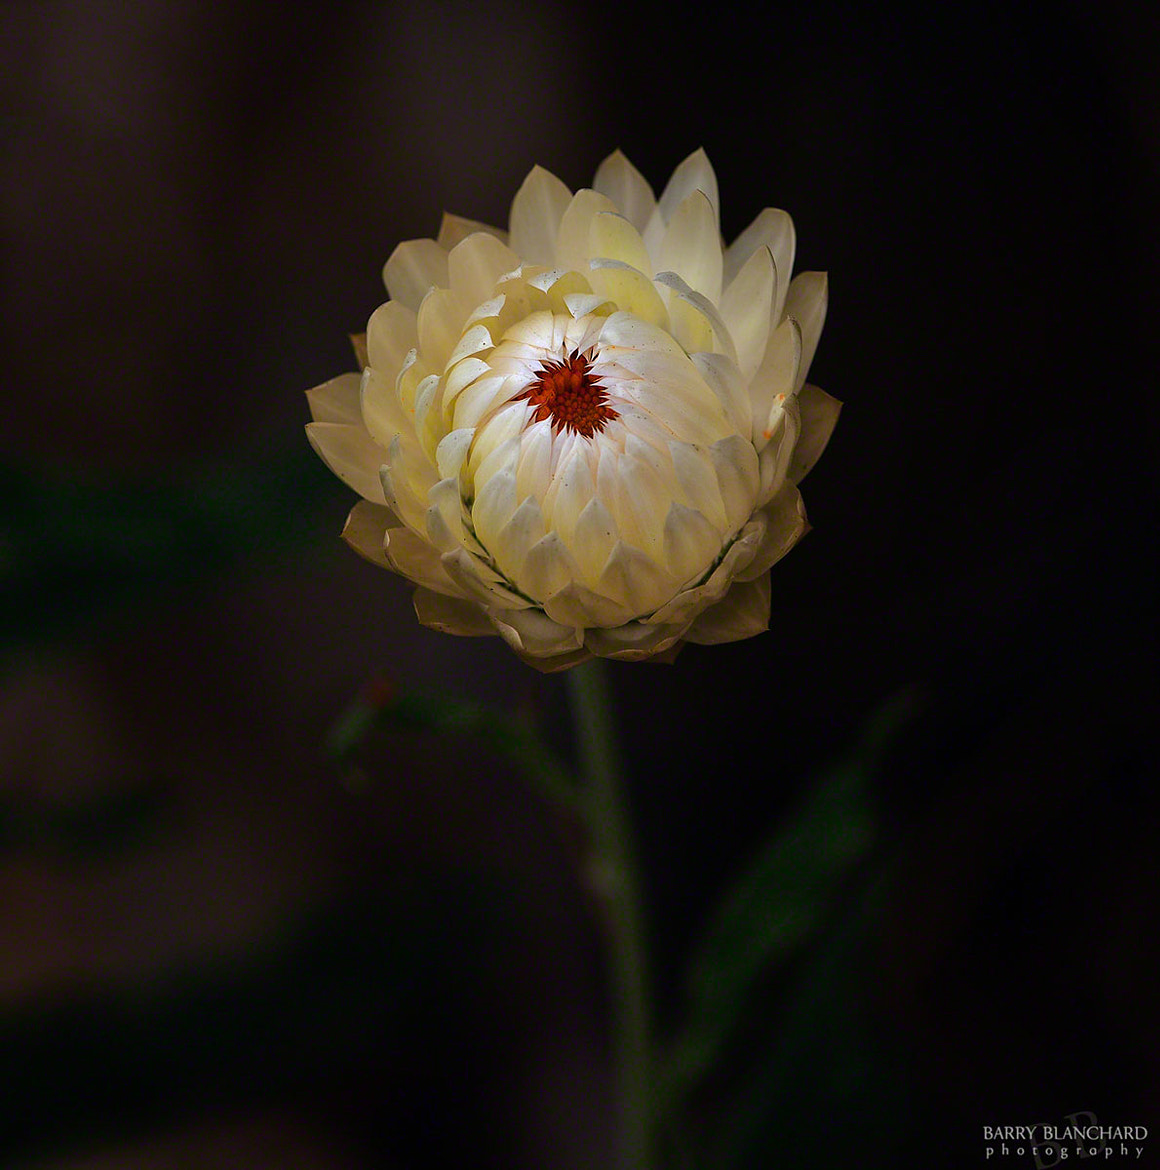 Photograph Strawflower No. 2 by Barry Blanchard on 500px